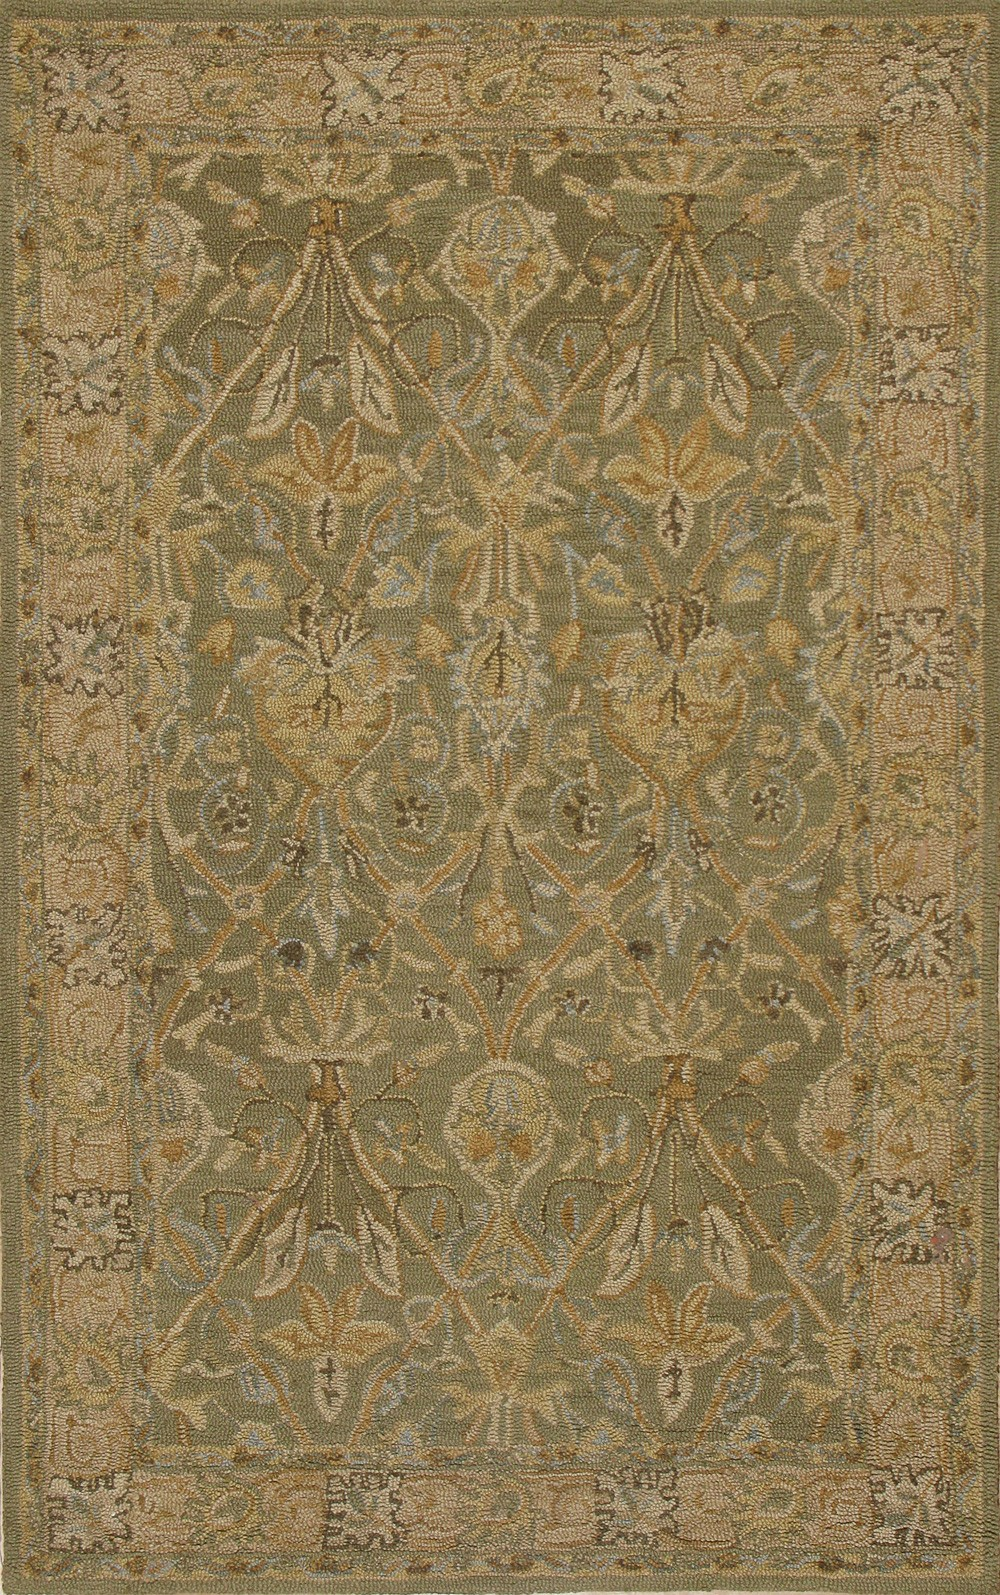 Cozy Rugsville Camilla Sage Green Traditional Wool Rug 10525, 10525 traditional wool rugs